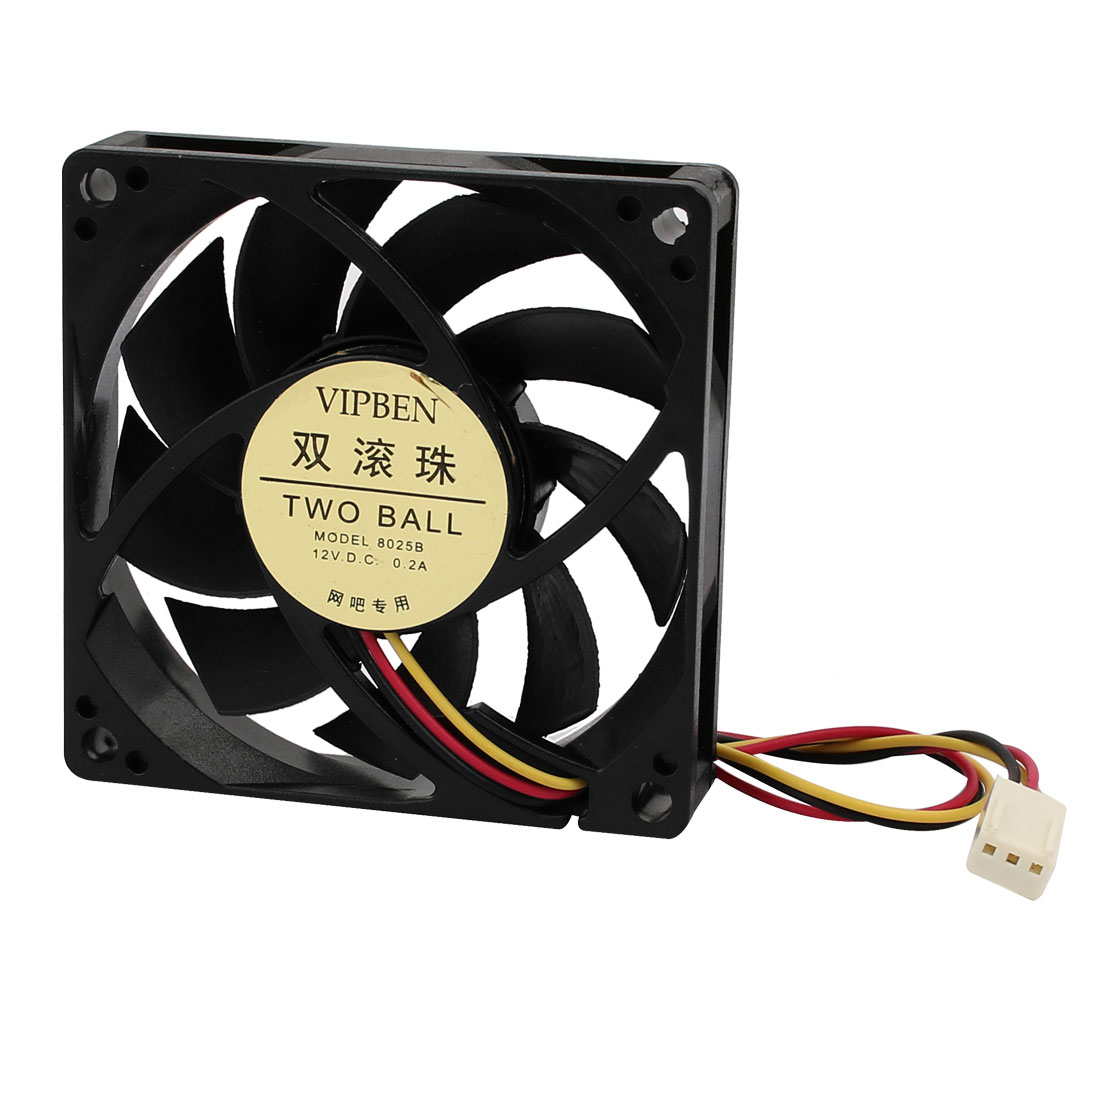 DC 12V 0.2A 9 Vanes Two Ball Brushless Cooling Fan 70mm x 70mm x 15mm Black